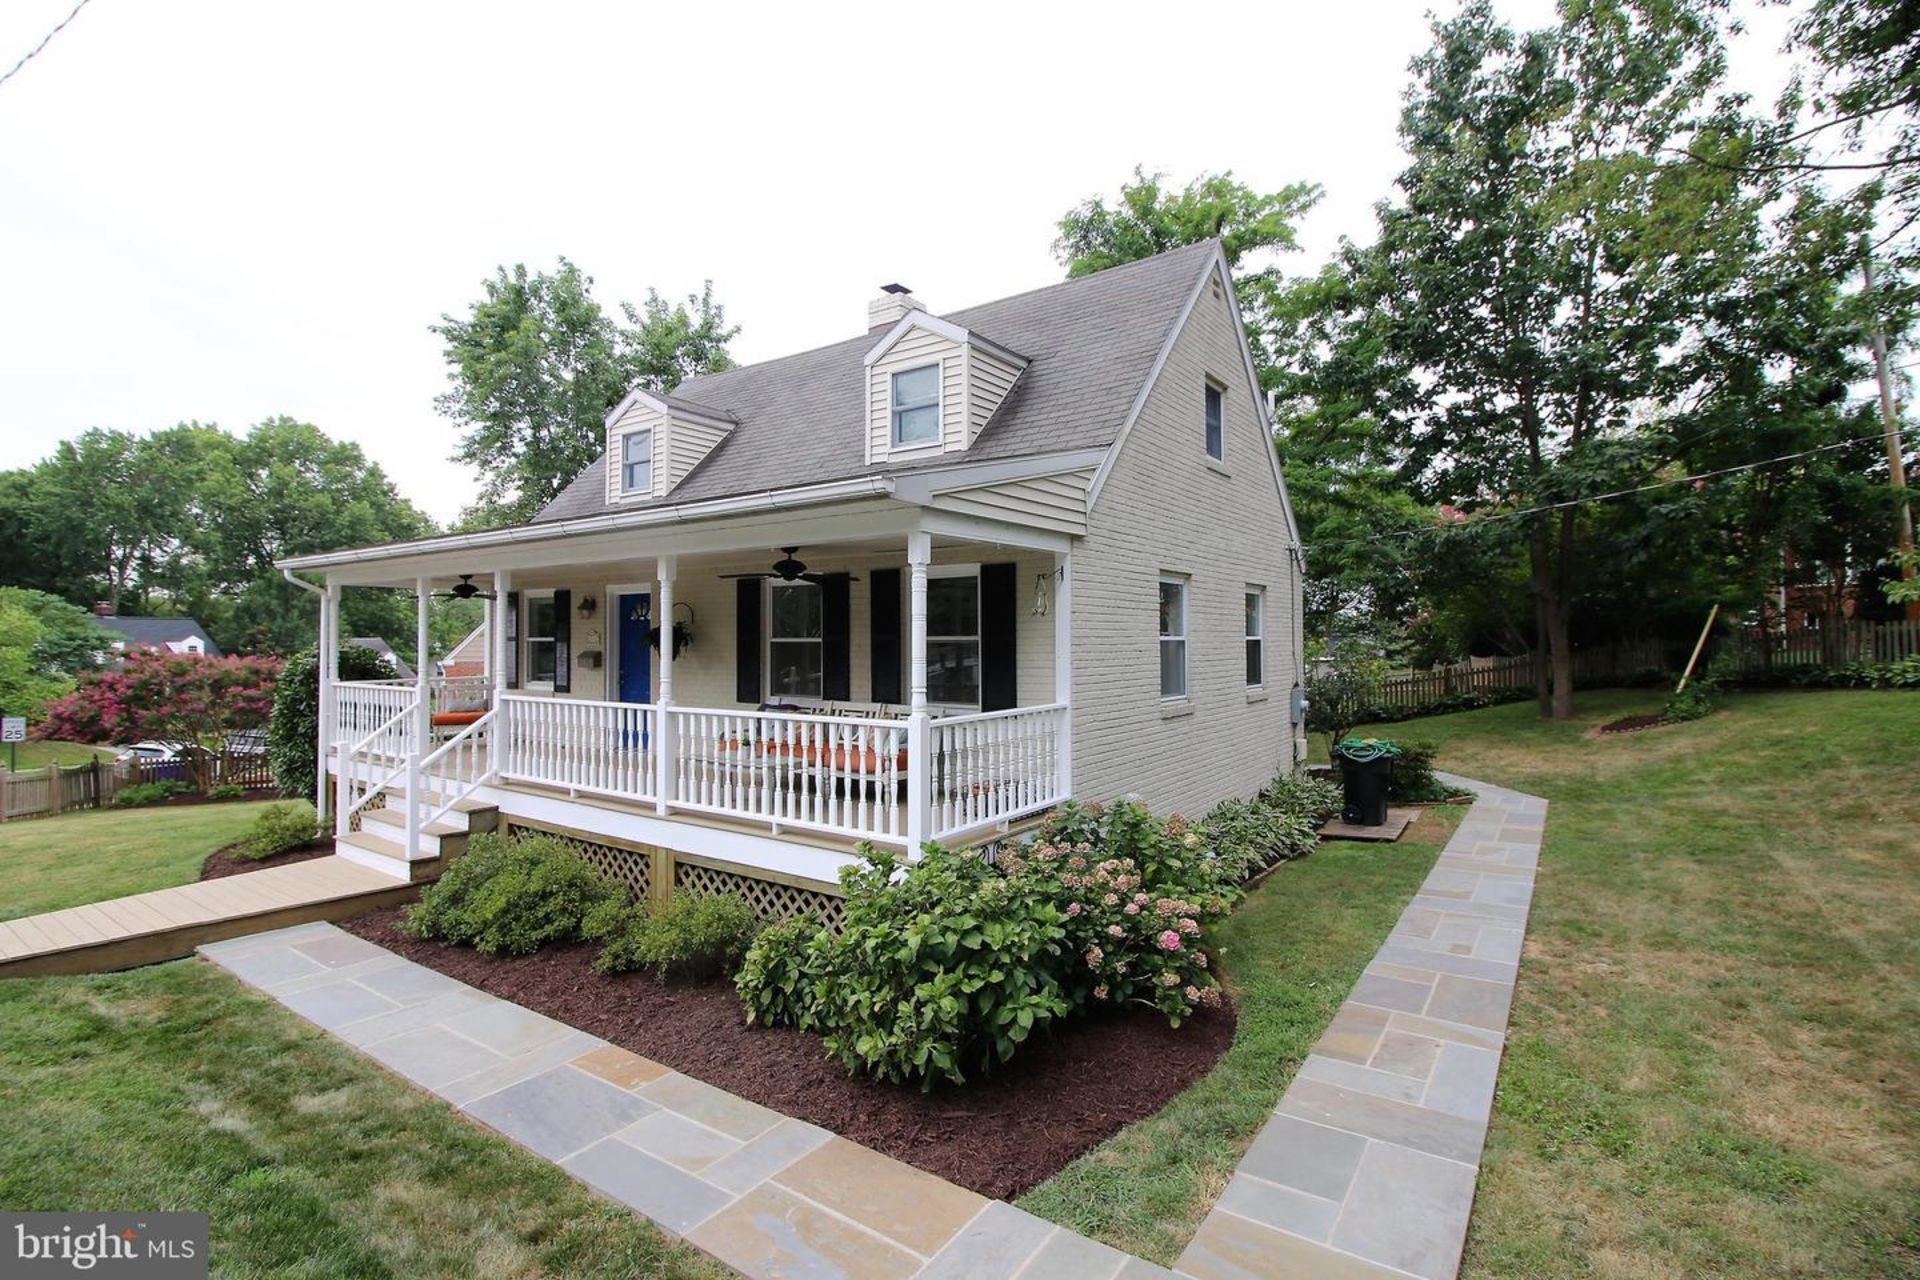 Off Market Home Under Contract  For Our Buyers in Arlington